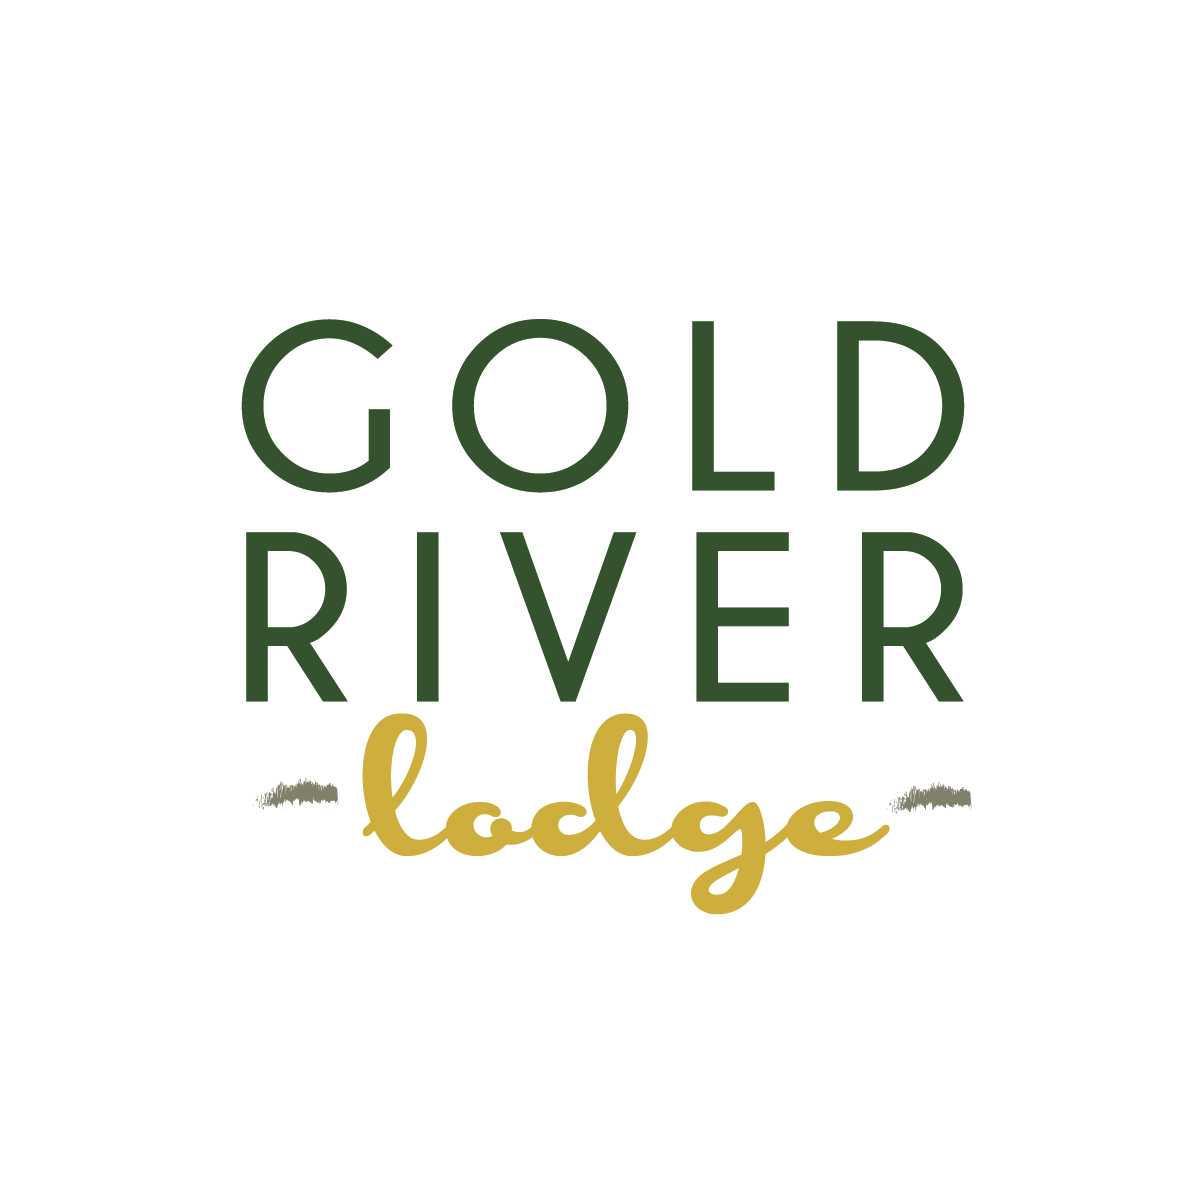 Gold River Lodge